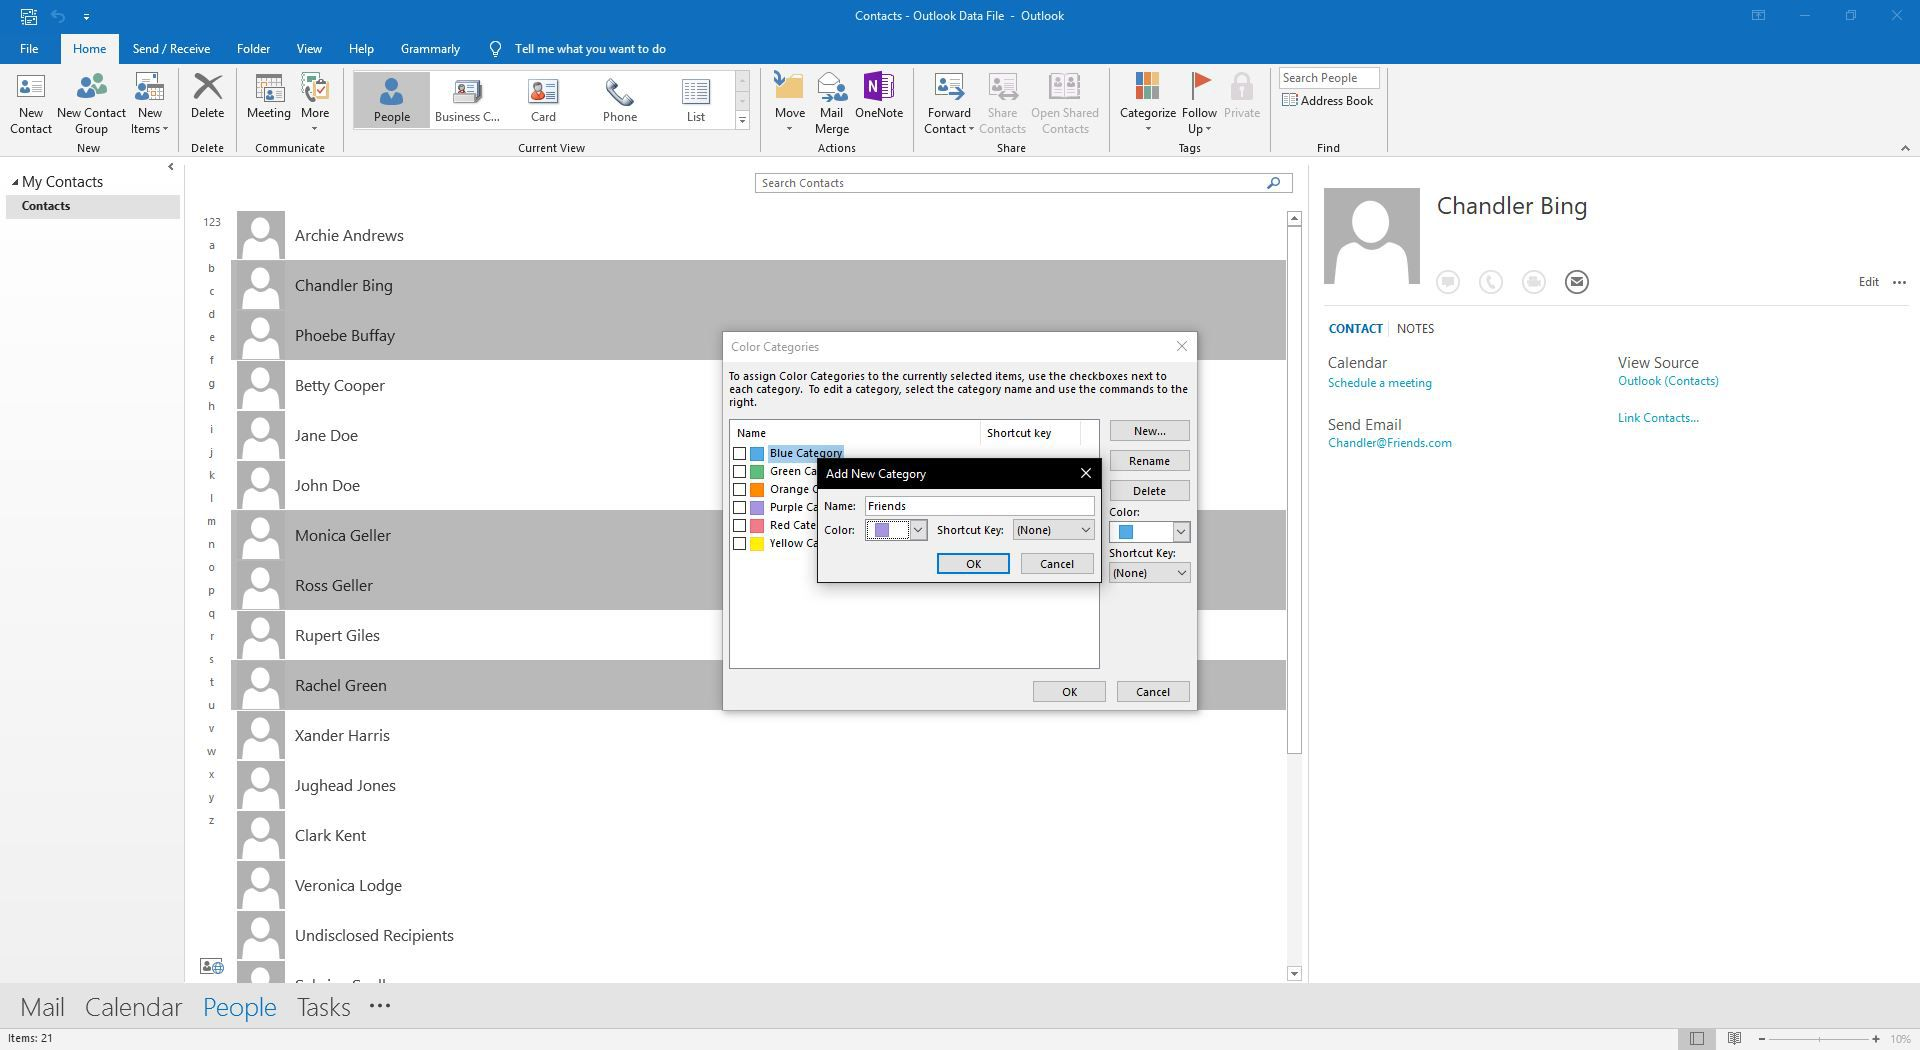 Creating a new category in Outlook